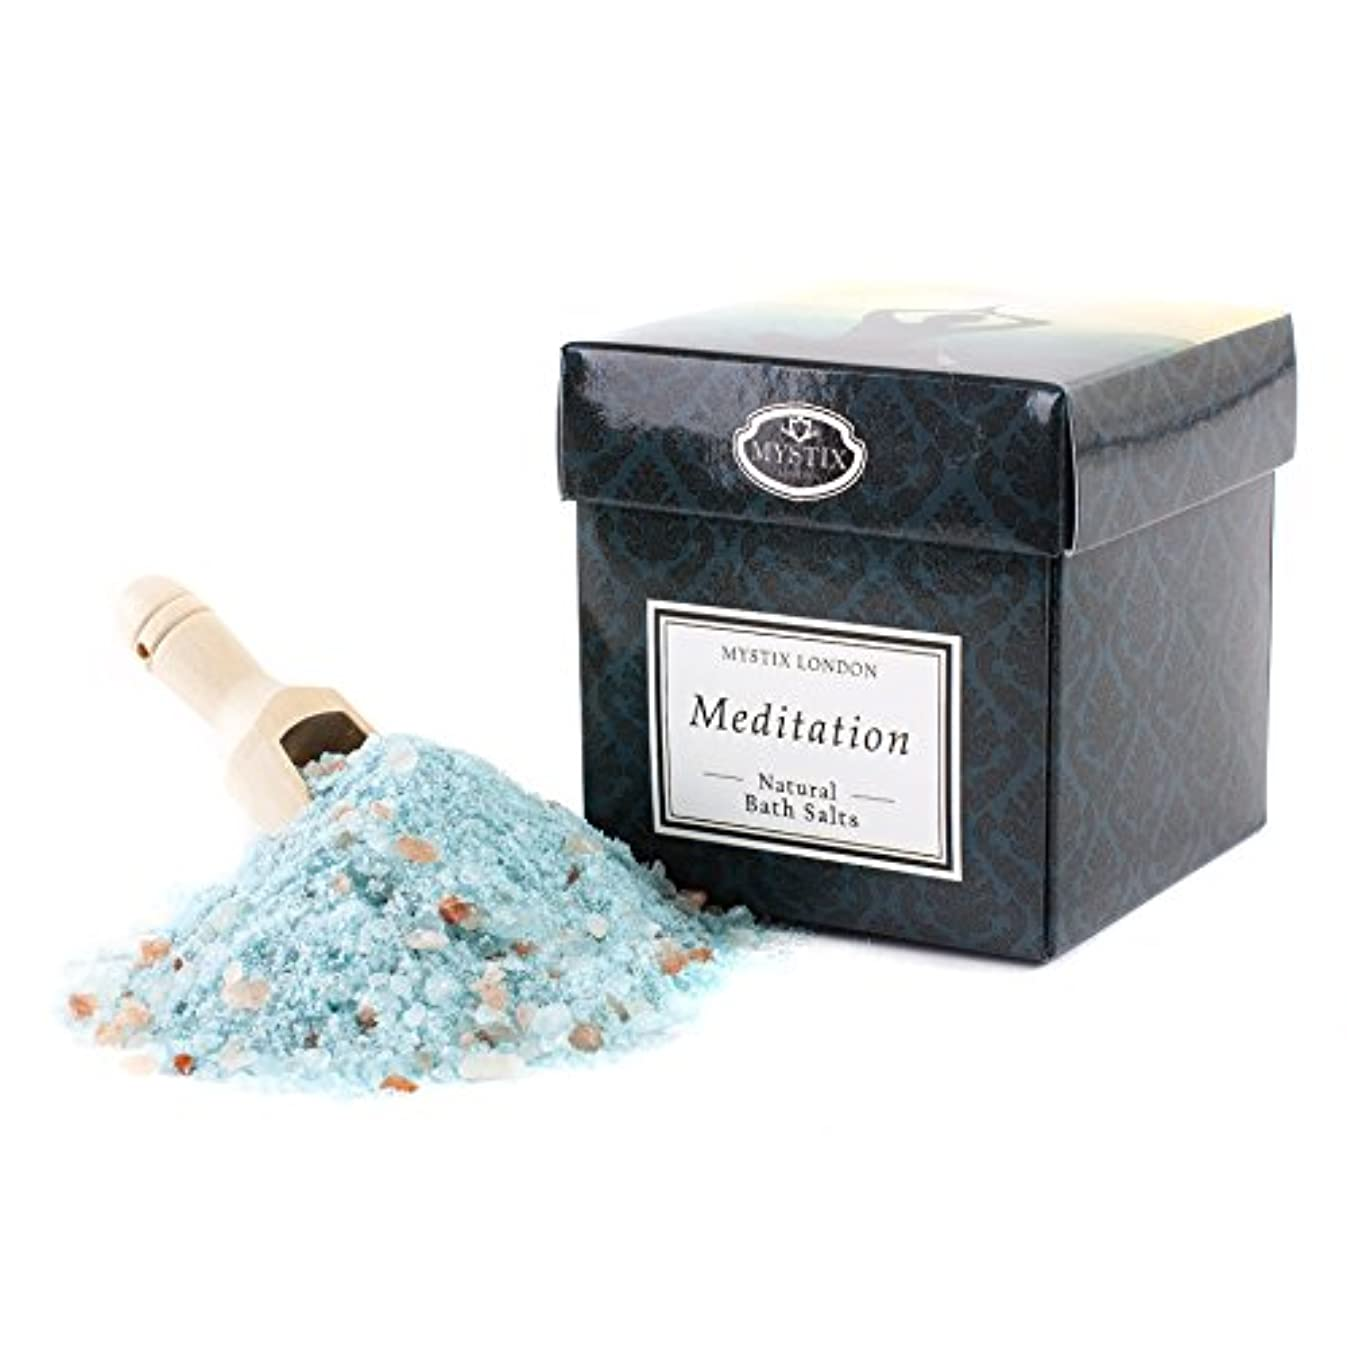 Mystix London | Meditation Bath Salt - 350g